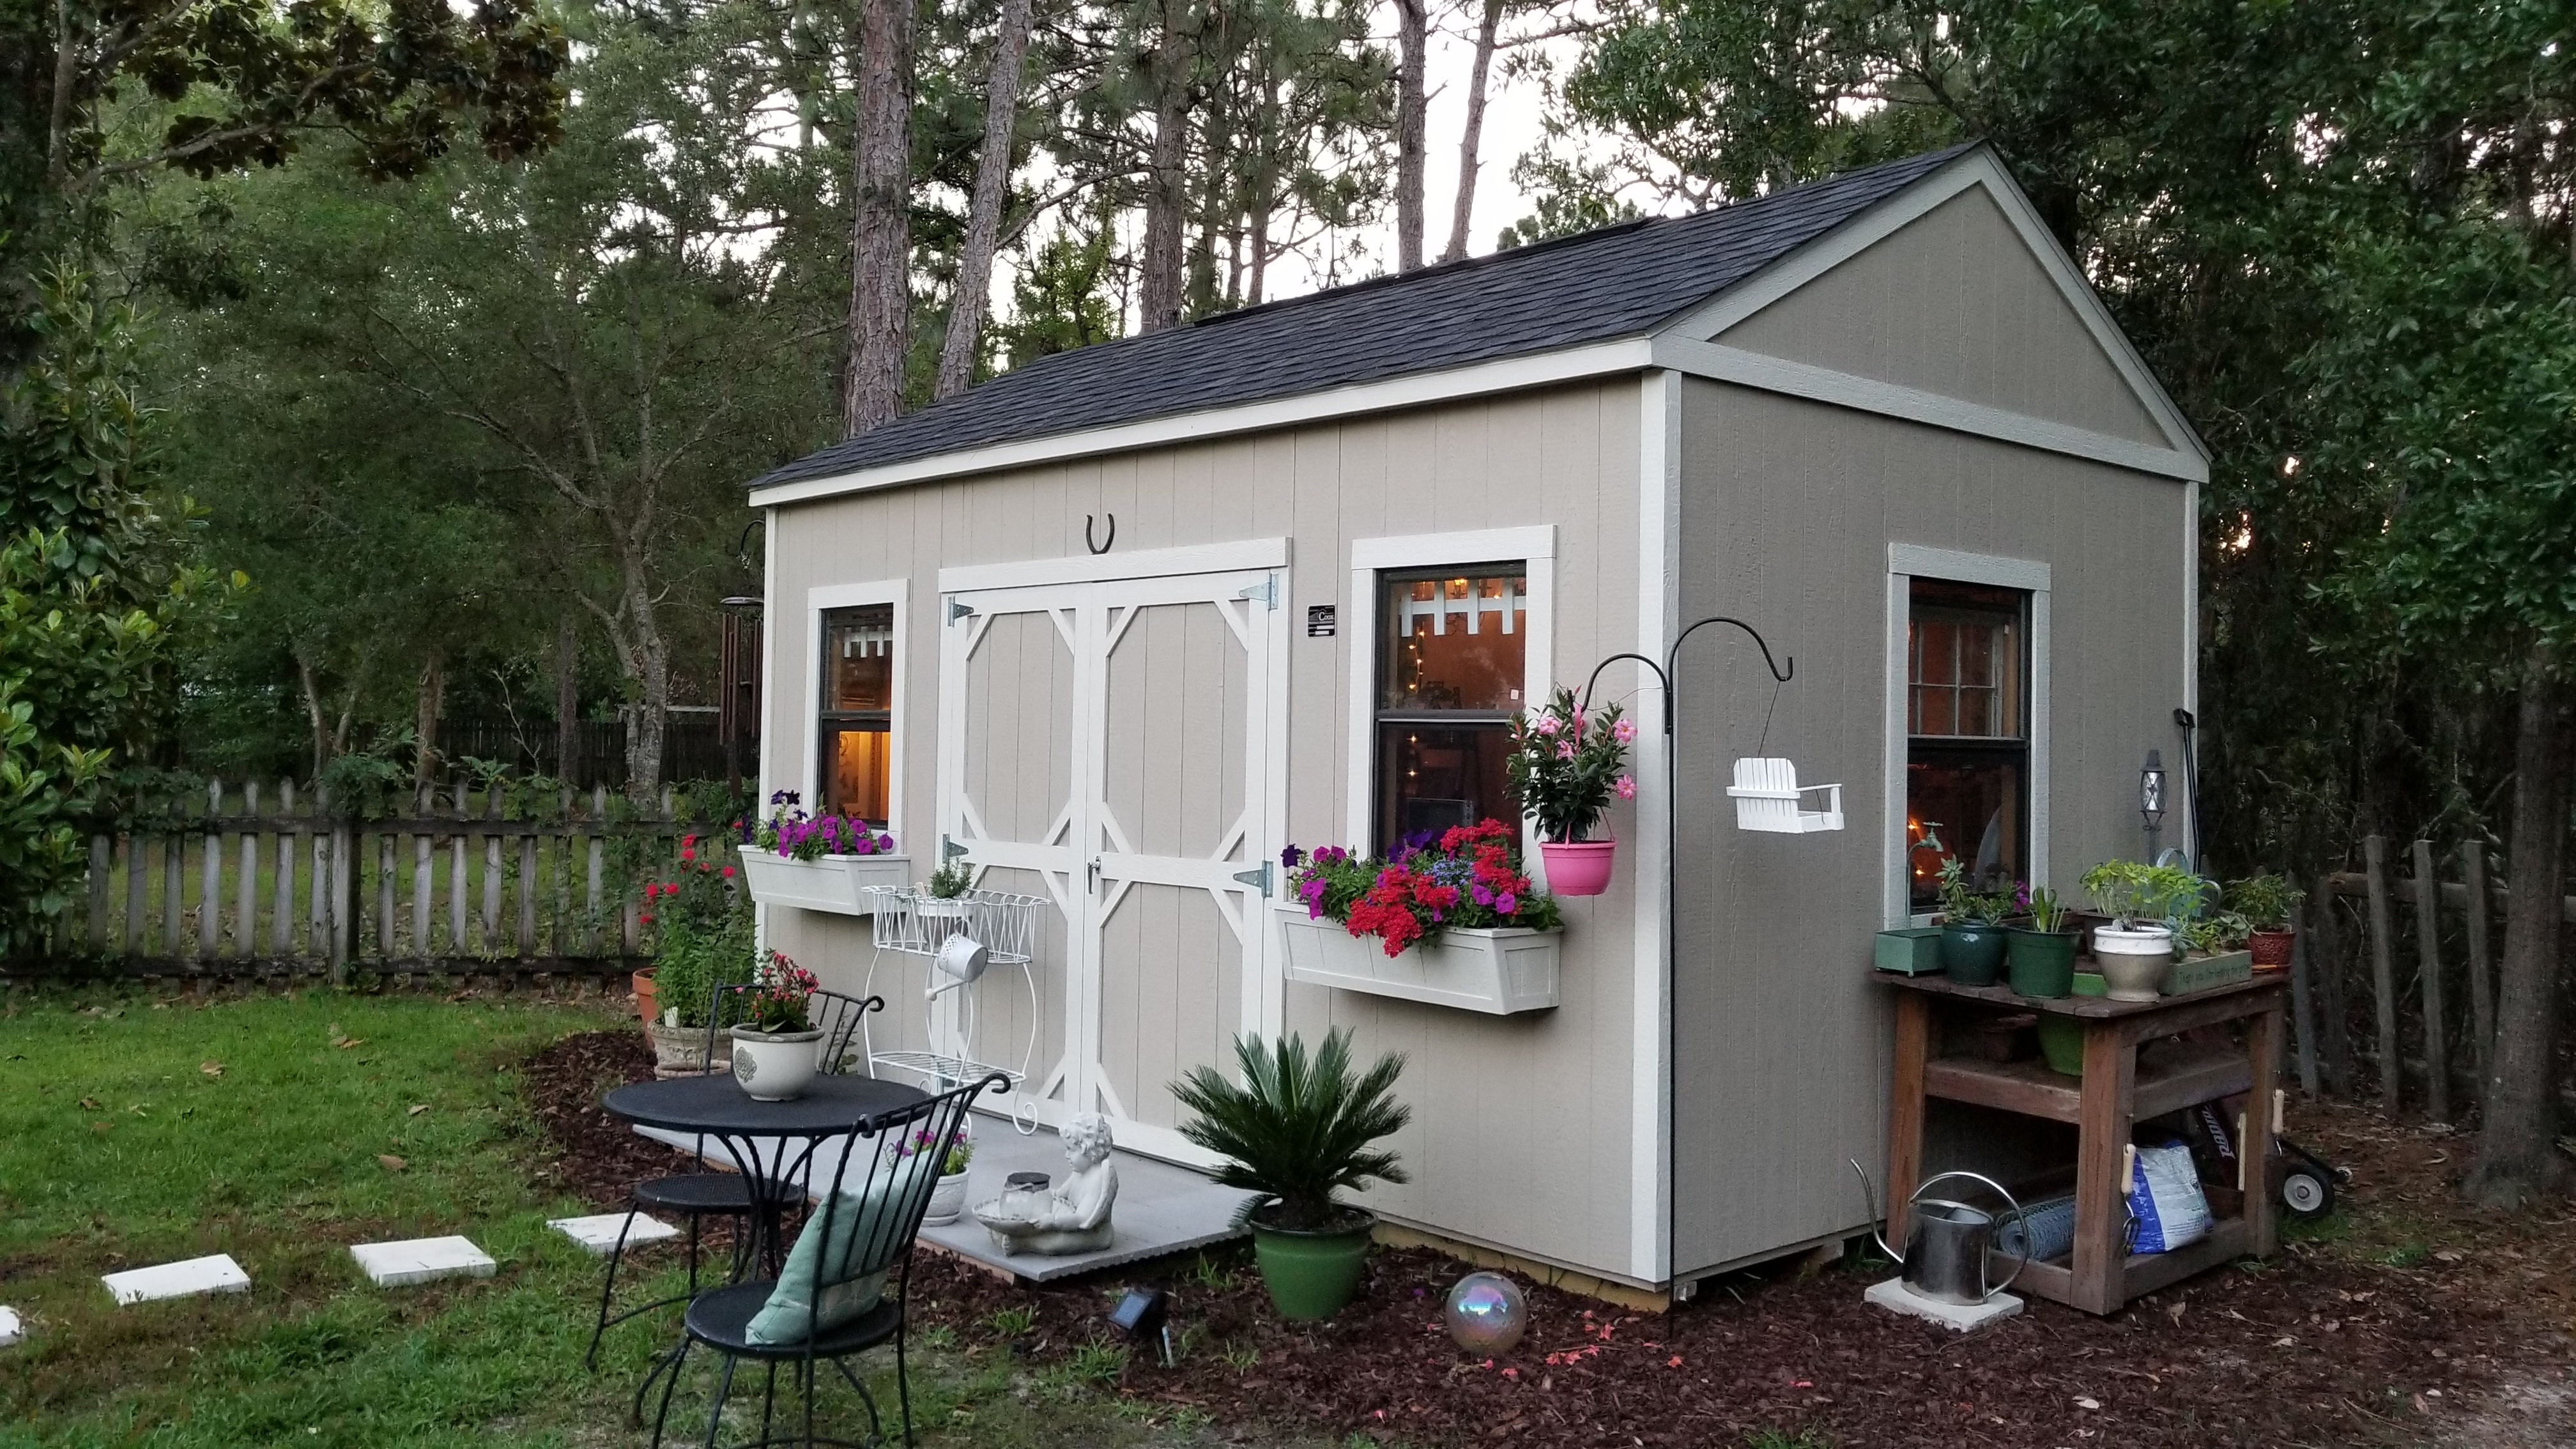 Utility Shed Turned Into a She Shed